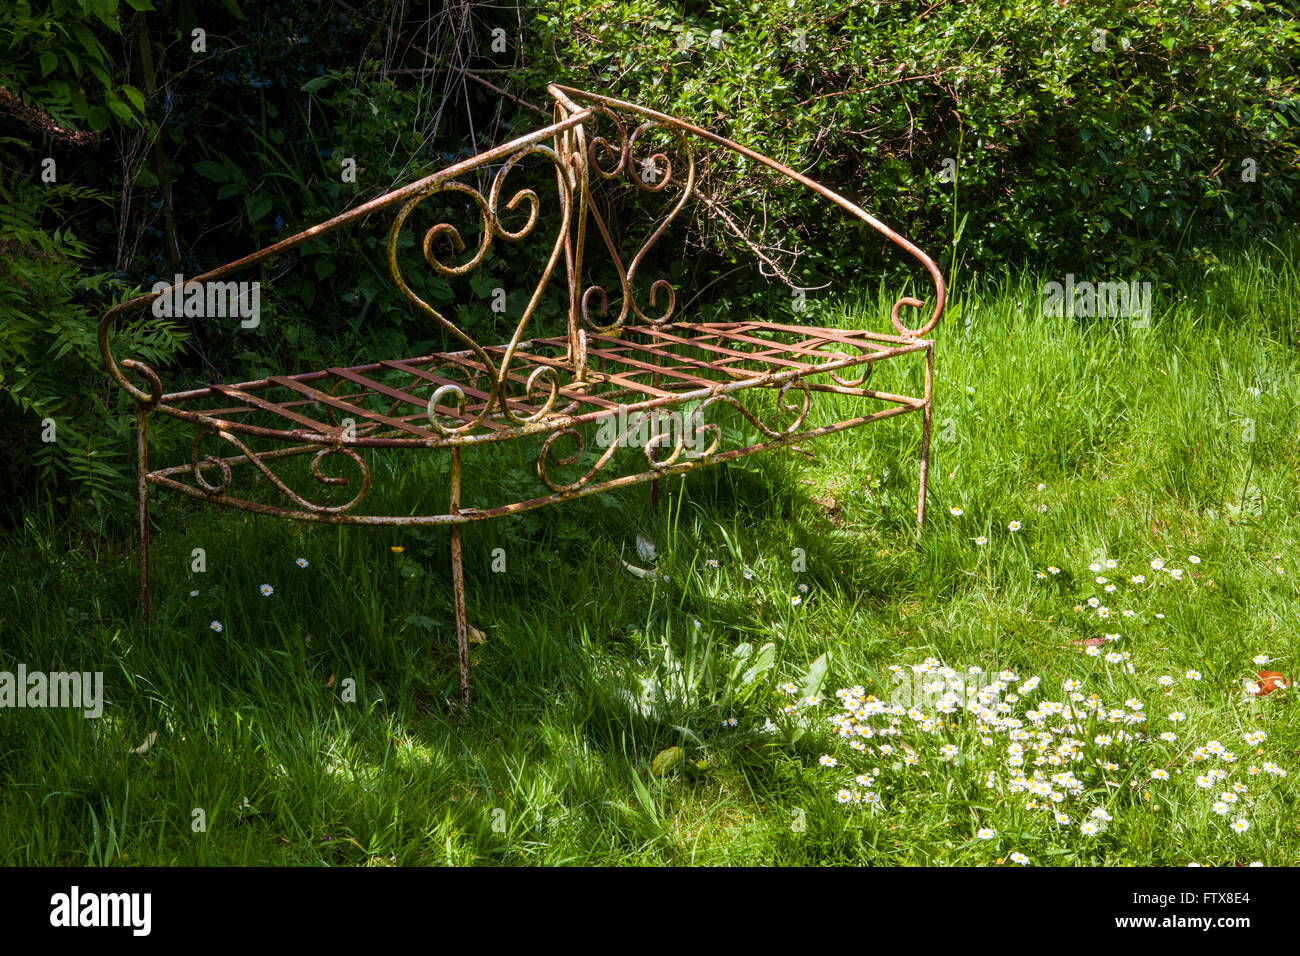 Old garden furniture made from iron etc sitting in an overgrown garden. Old garden furniture made from iron etc sitting in an overgrown